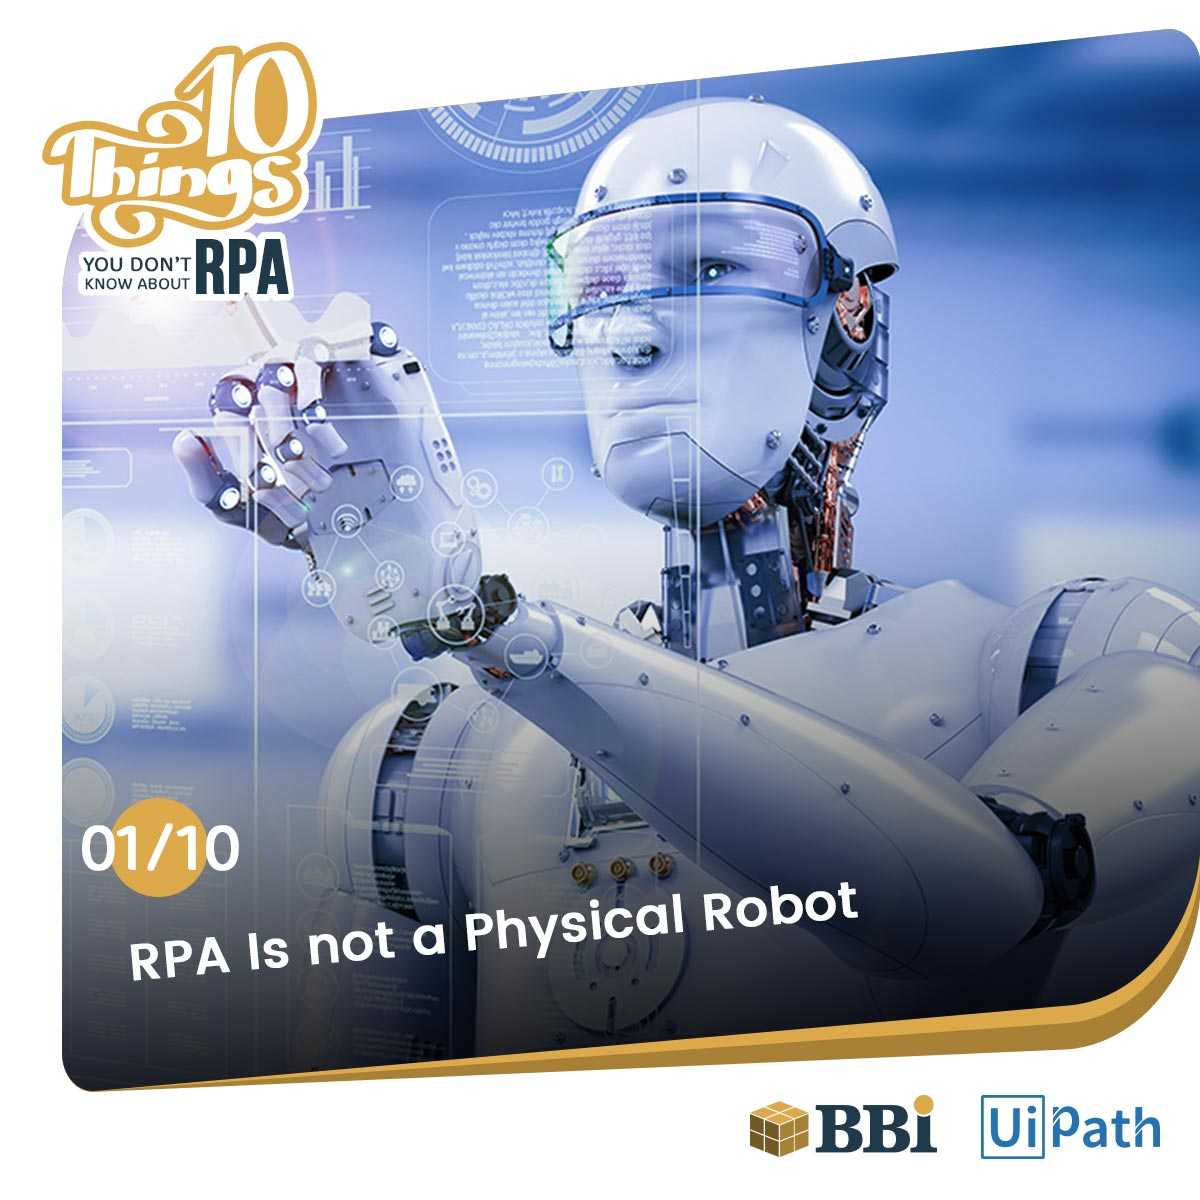 RPA is not a physical Robot